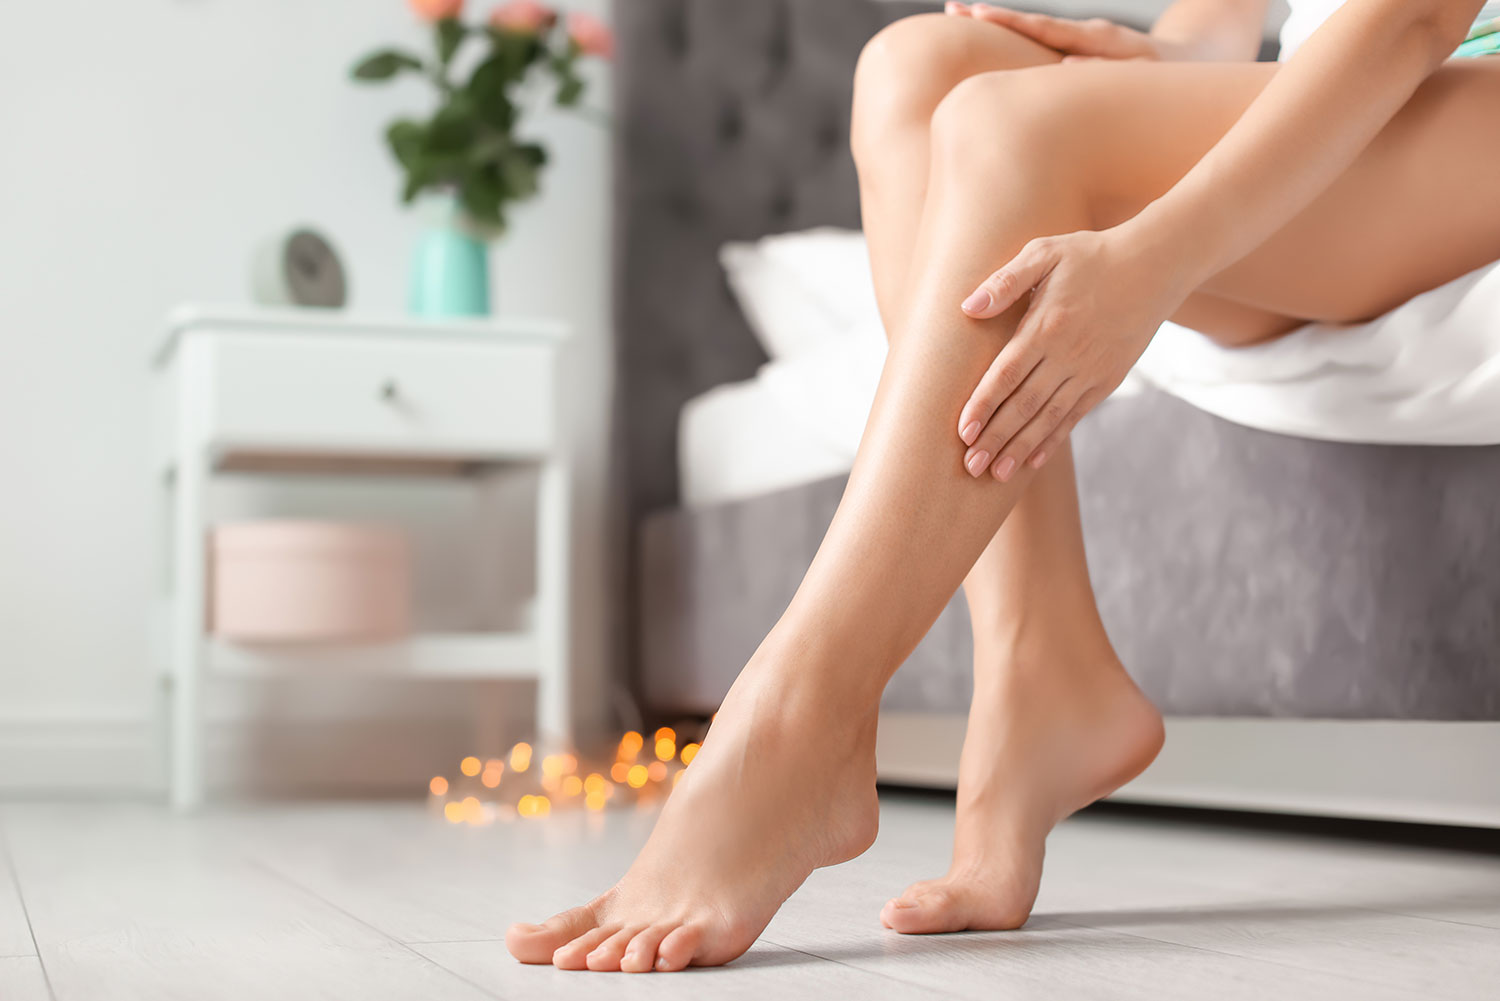 What Can Happen If You Leave Varicose Veins Untreated